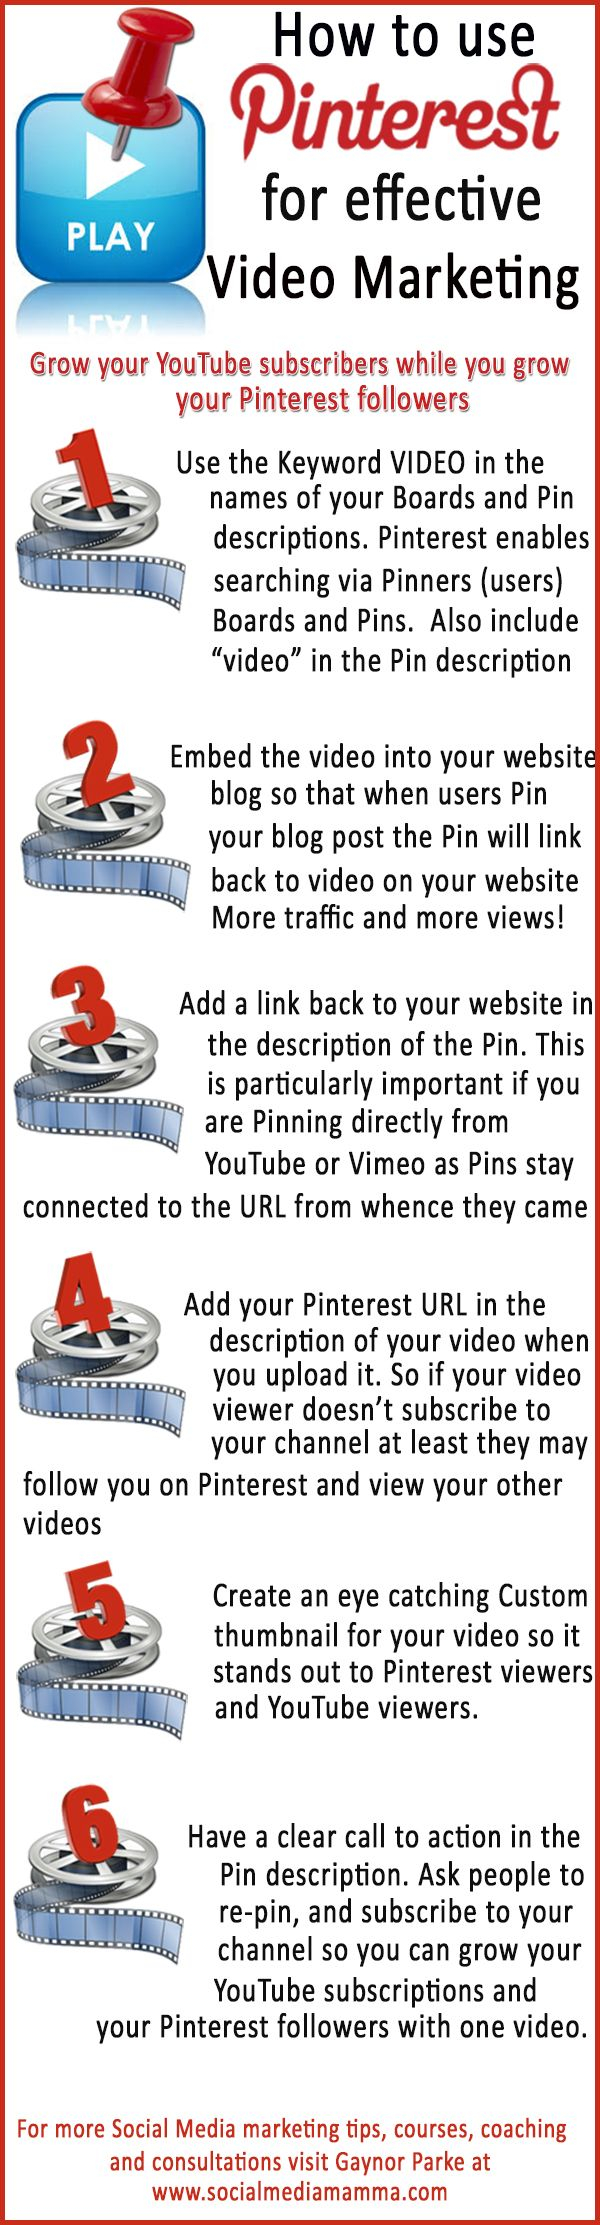 How to use Pinterest for effective #videomarketing #infographic. For more video marketing tips ===> Click HERE: http://www.theonlinevideomarketer.com/blog-articles/